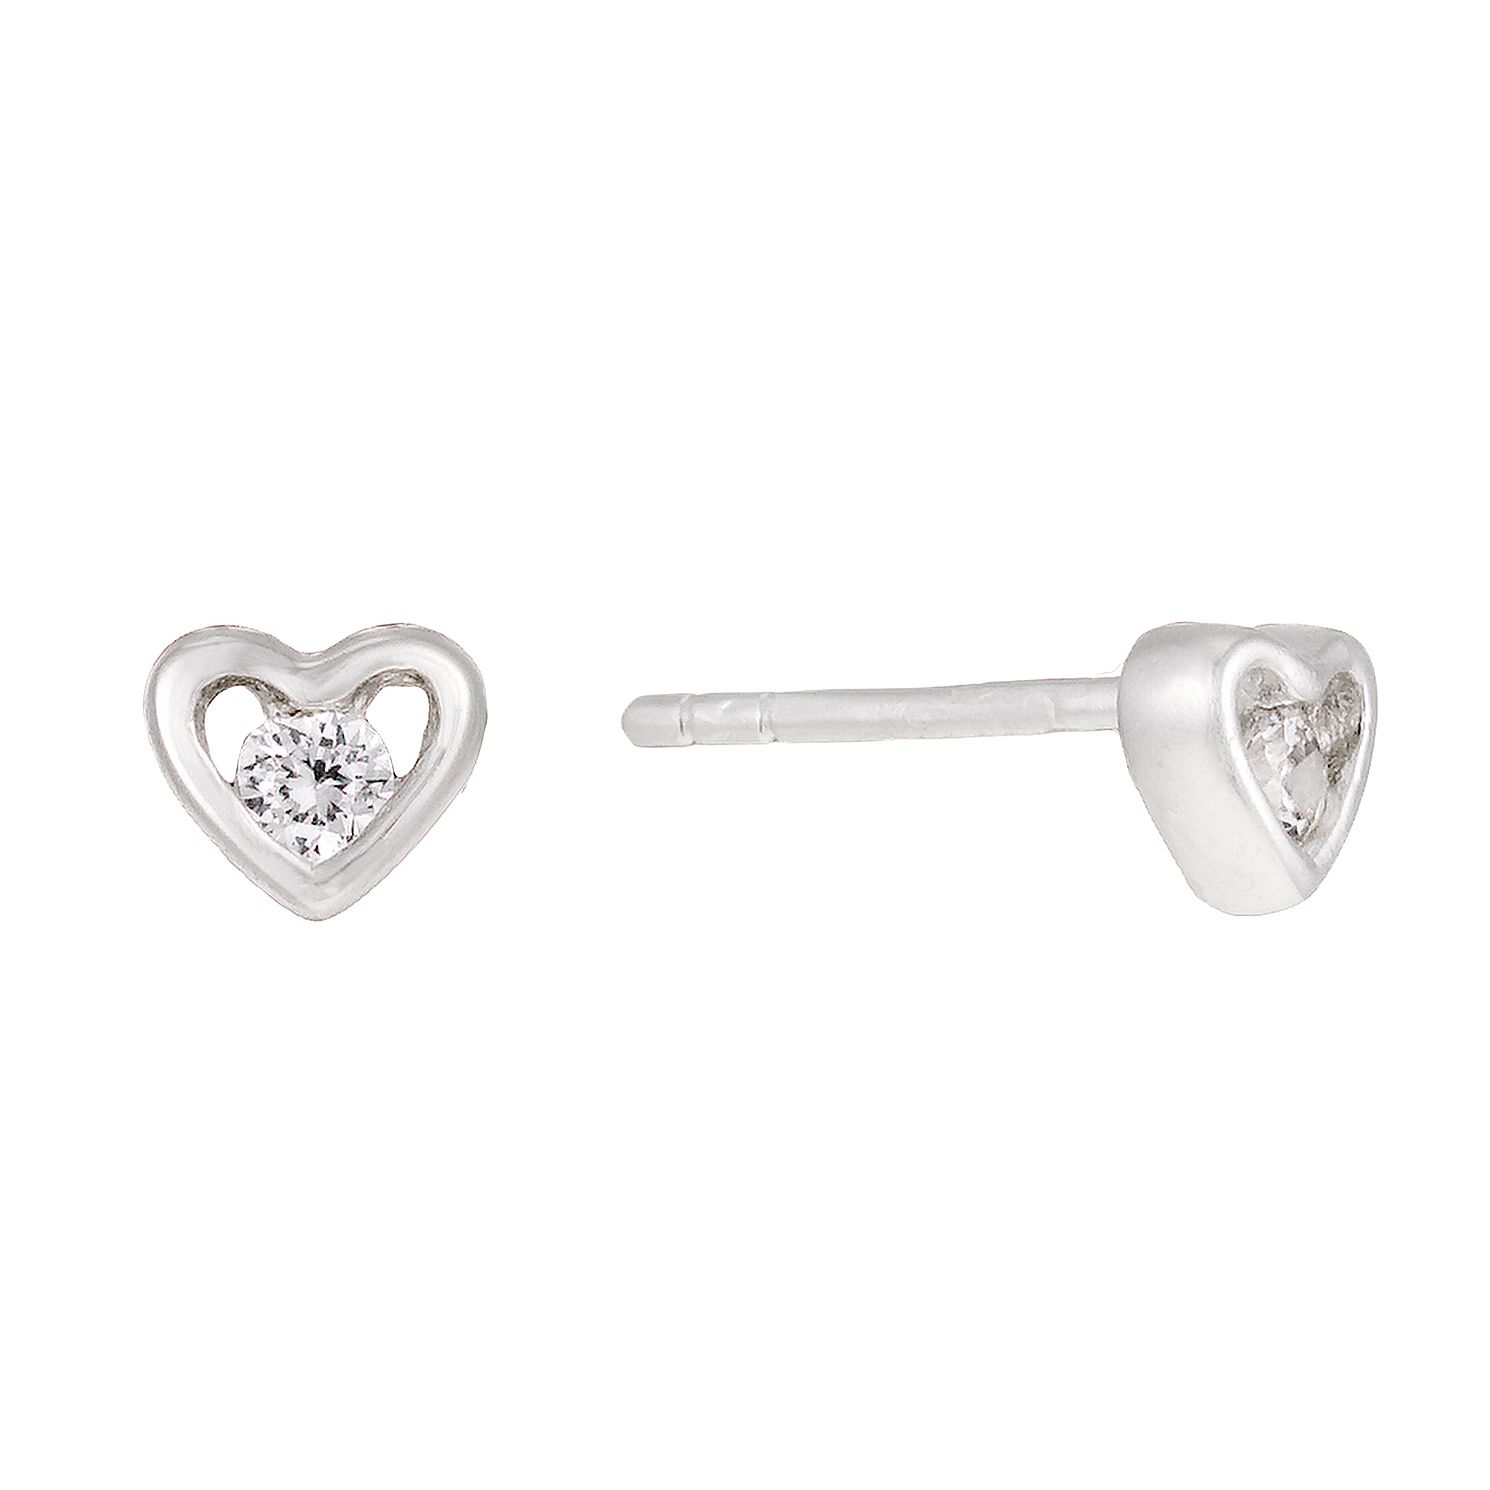 muru jewellery sterling image silver heart earrings love stud